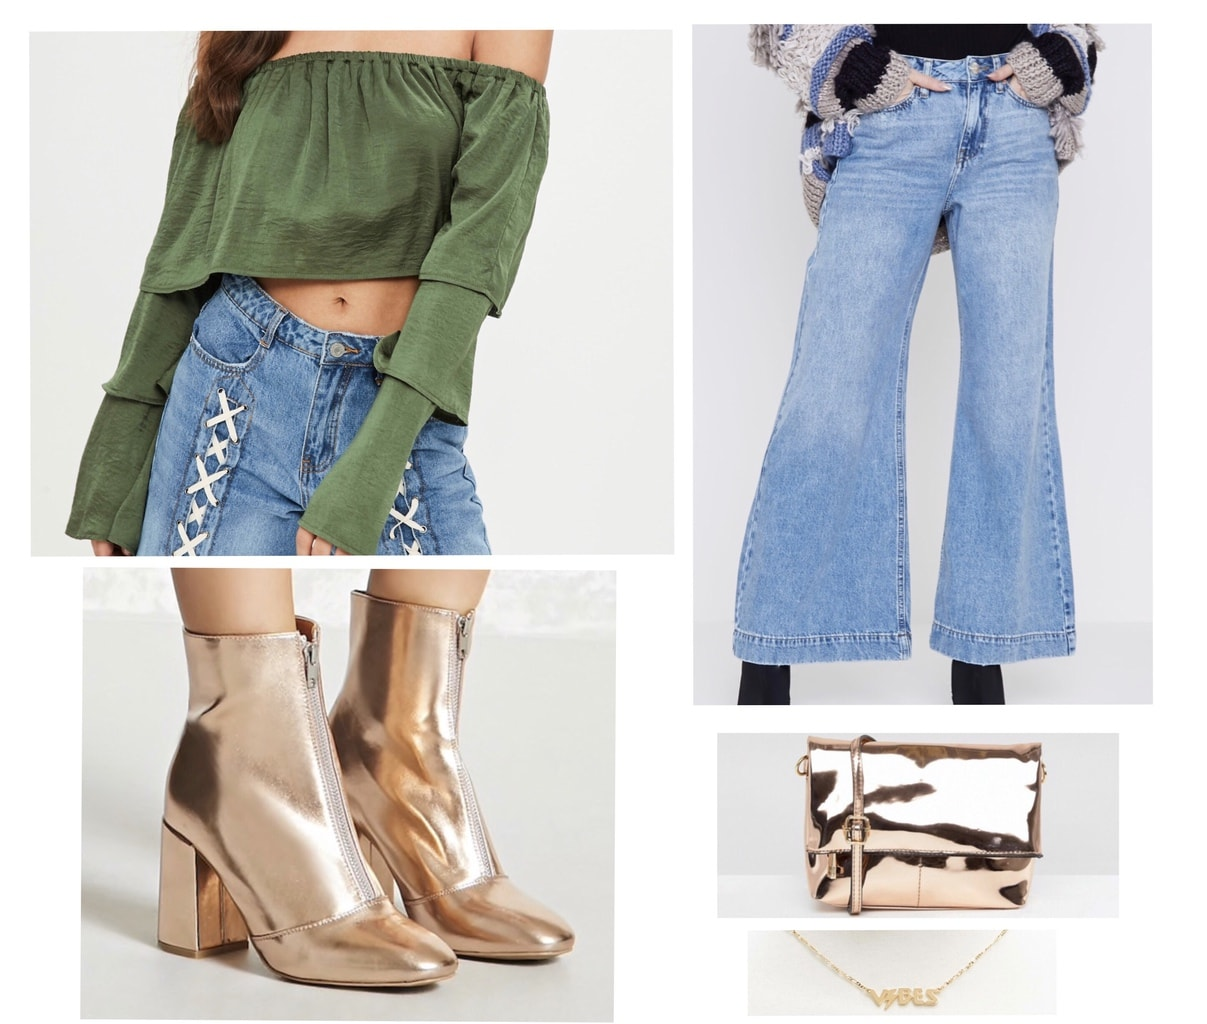 Cute St patricks day outfits: St. Patrick's night look with green off the shoulder top, light wash flare jeans, gold ankle boots, metallic crossbody bag, and gold necklace